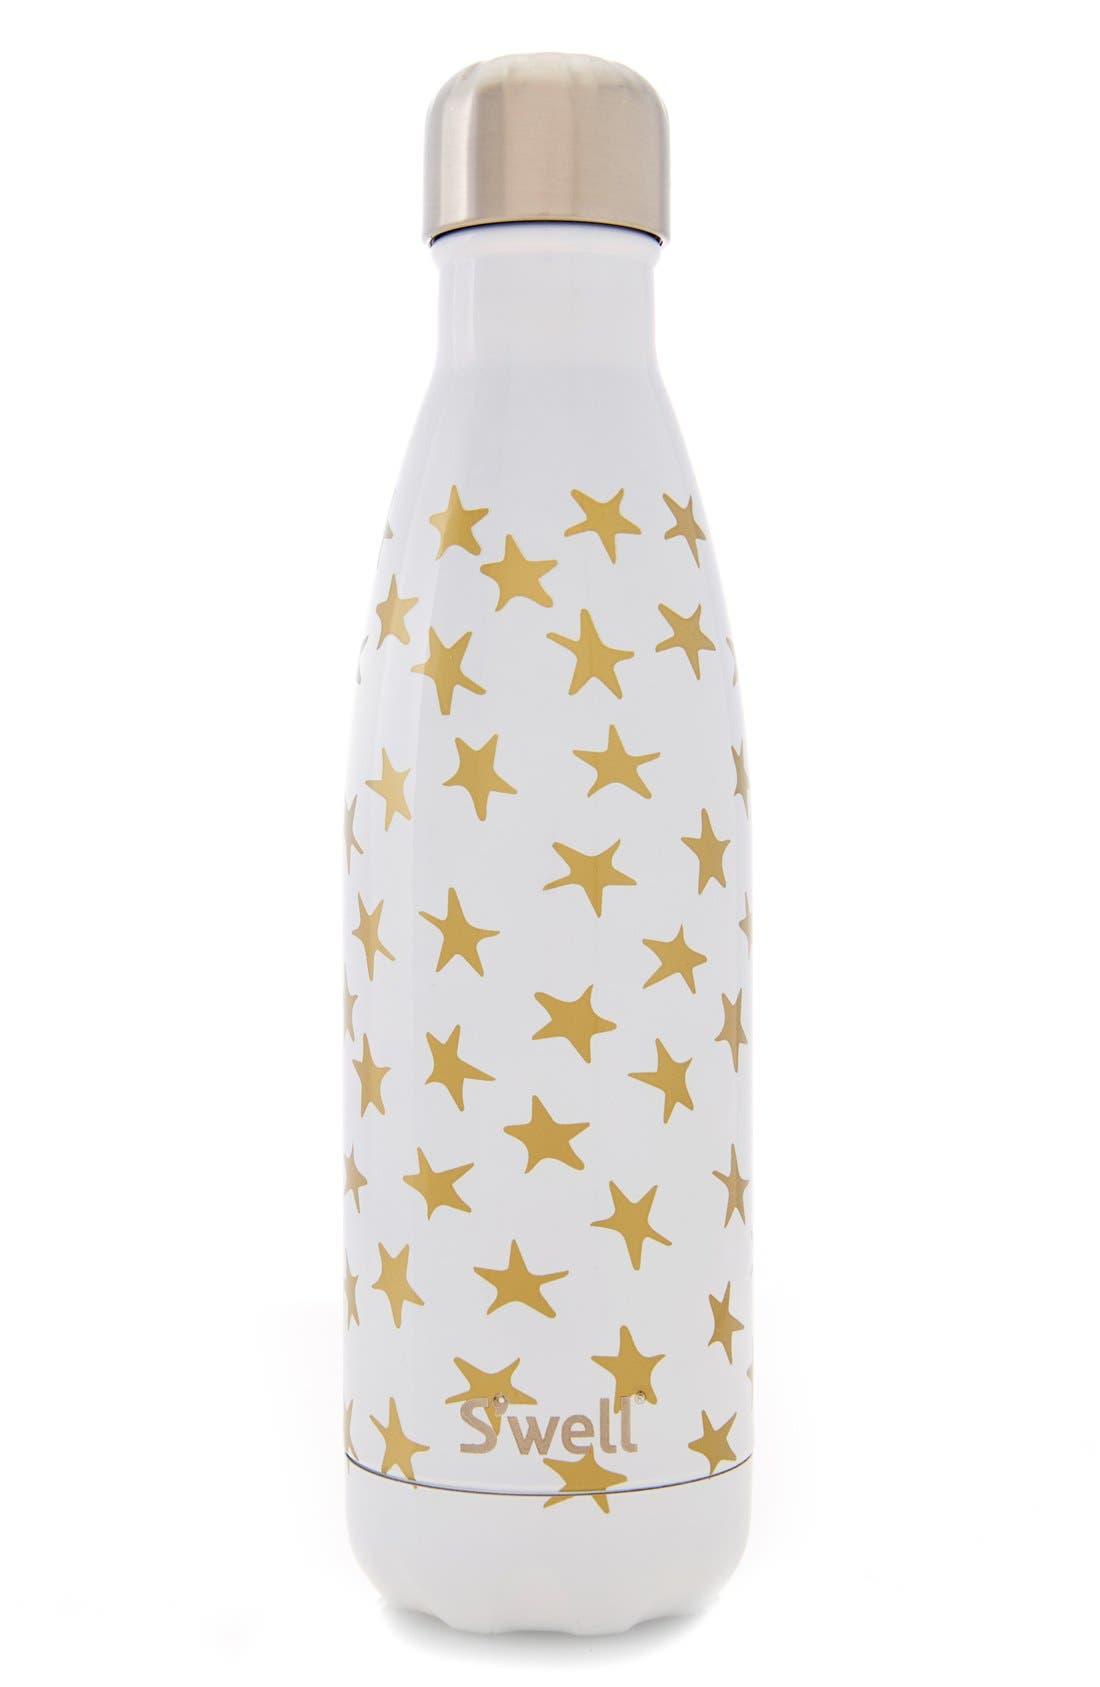 'Galaxy Collection - Star Crossed' Stainless Steel Water Bottle,                             Main thumbnail 1, color,                             100